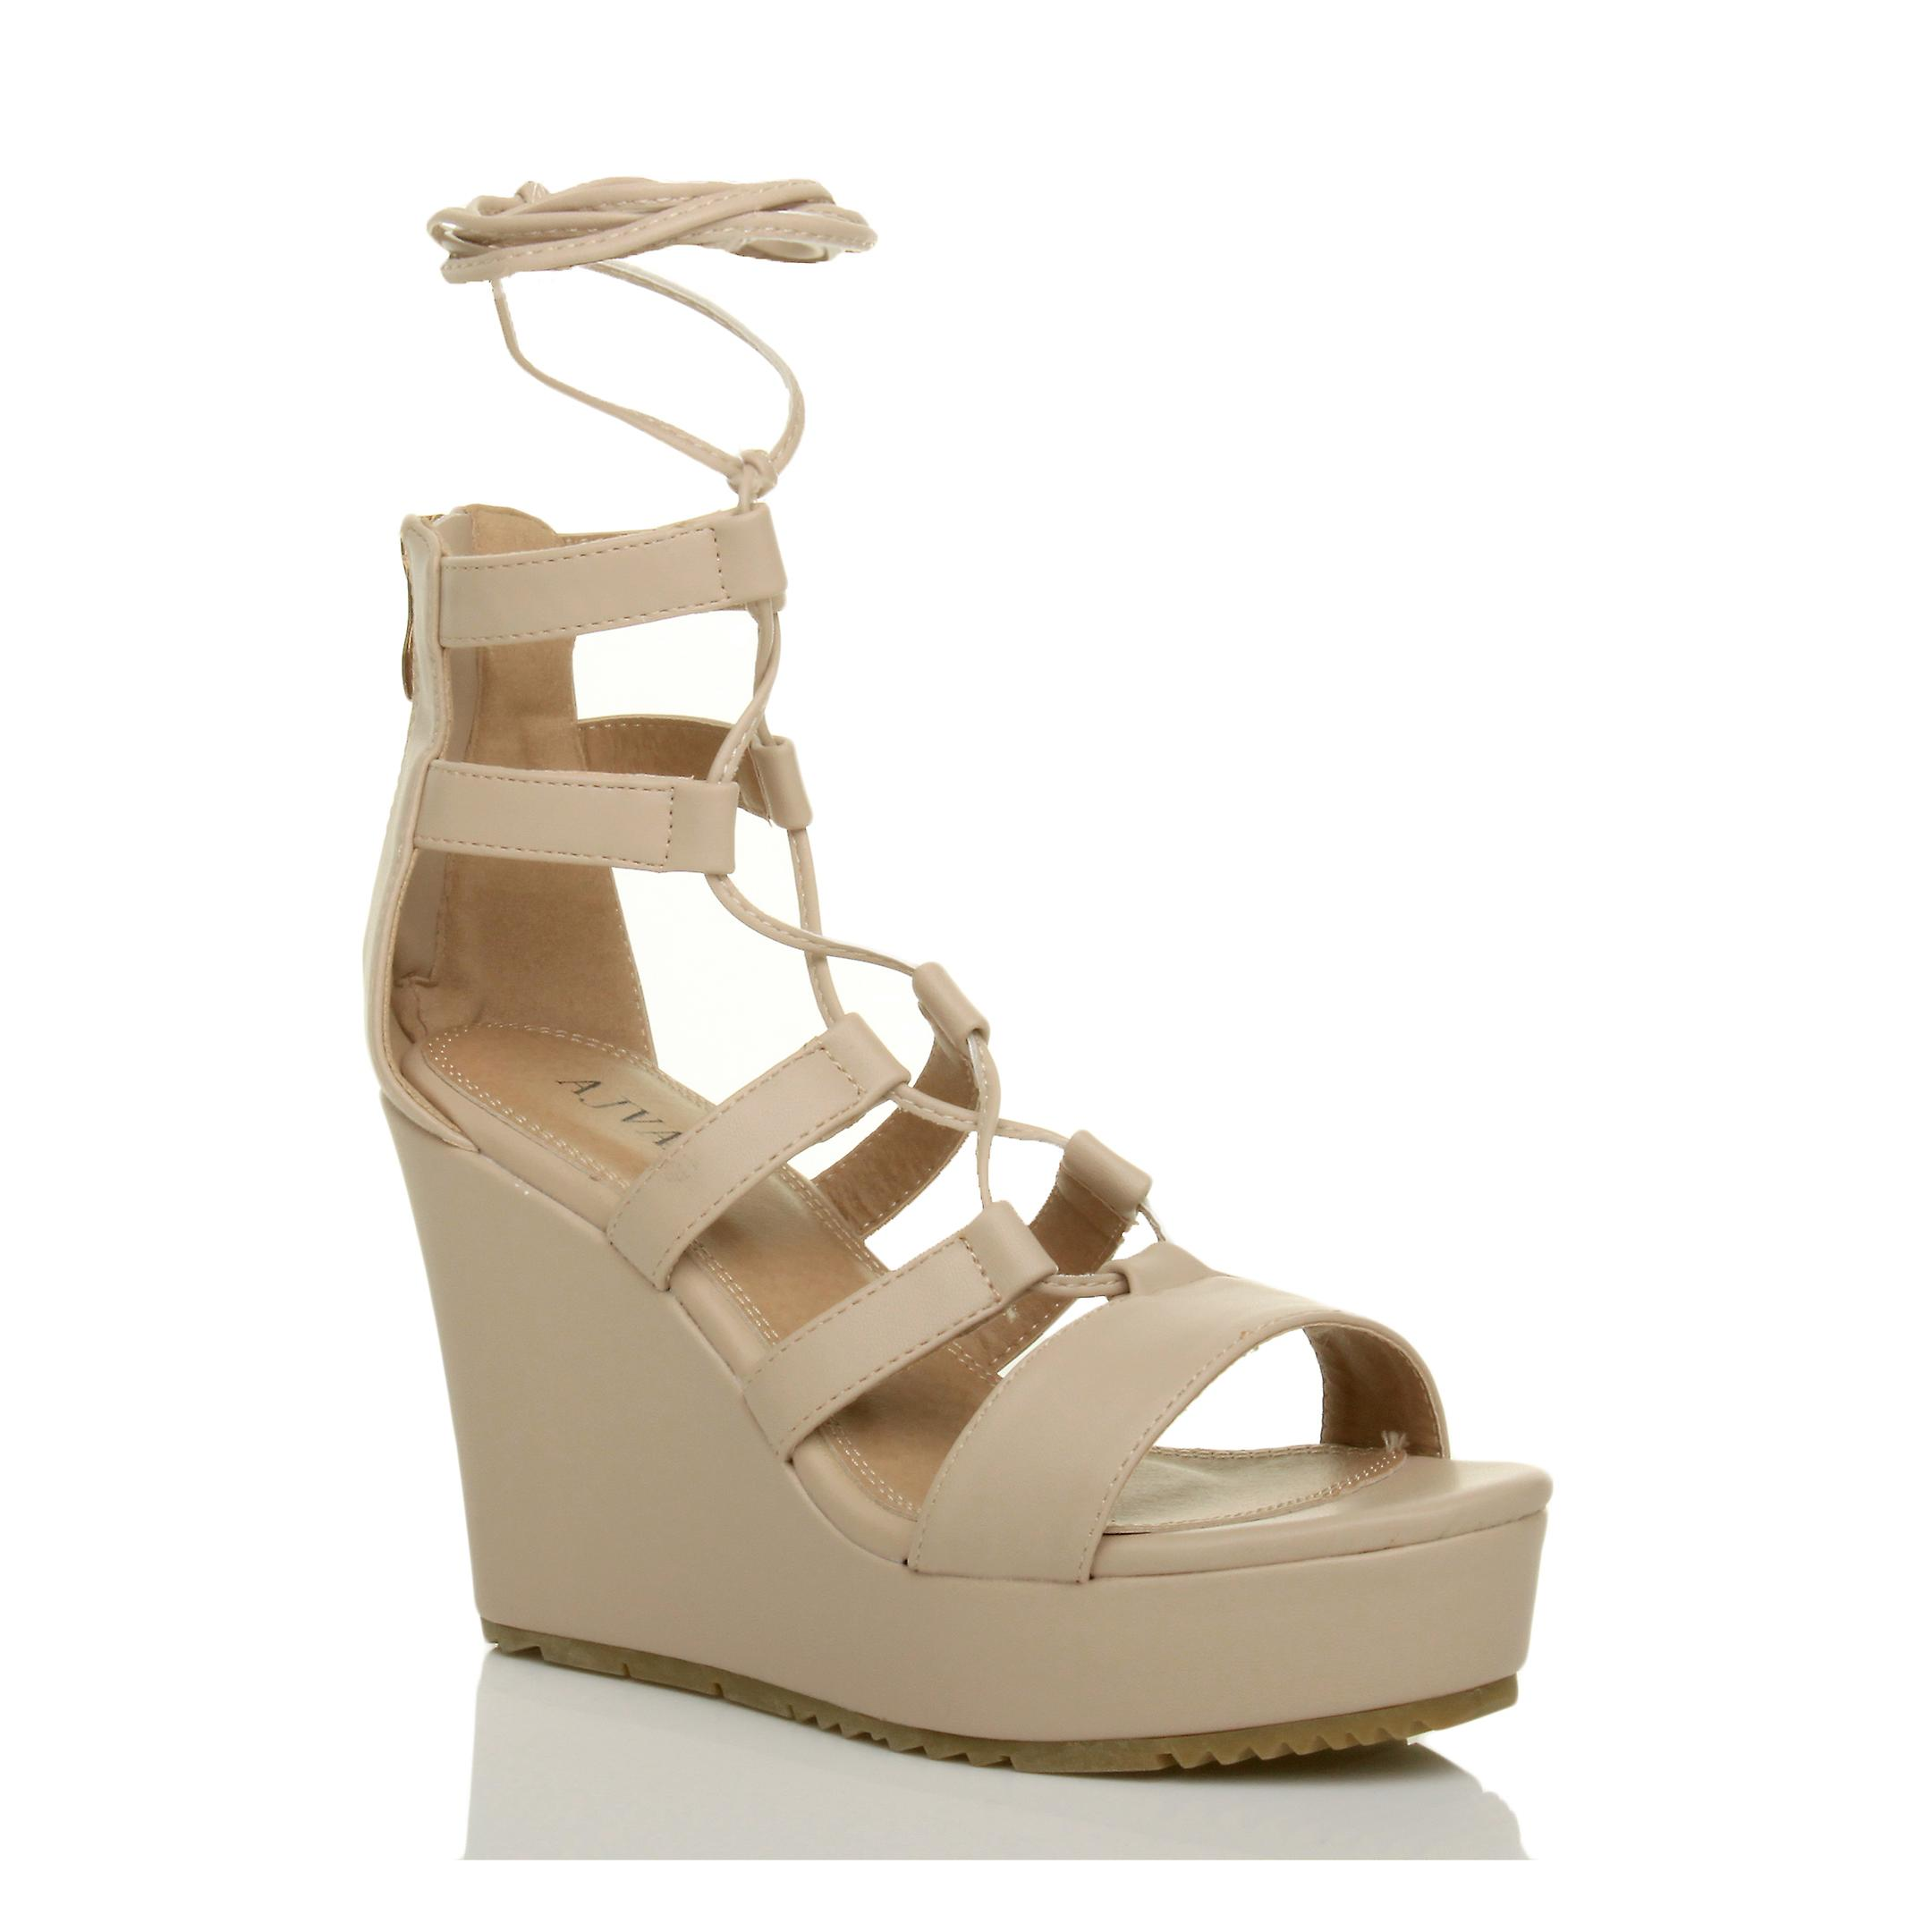 Ajvani womens high wedge platform ghillie lace tie up zip gladiator caged sandals shoes